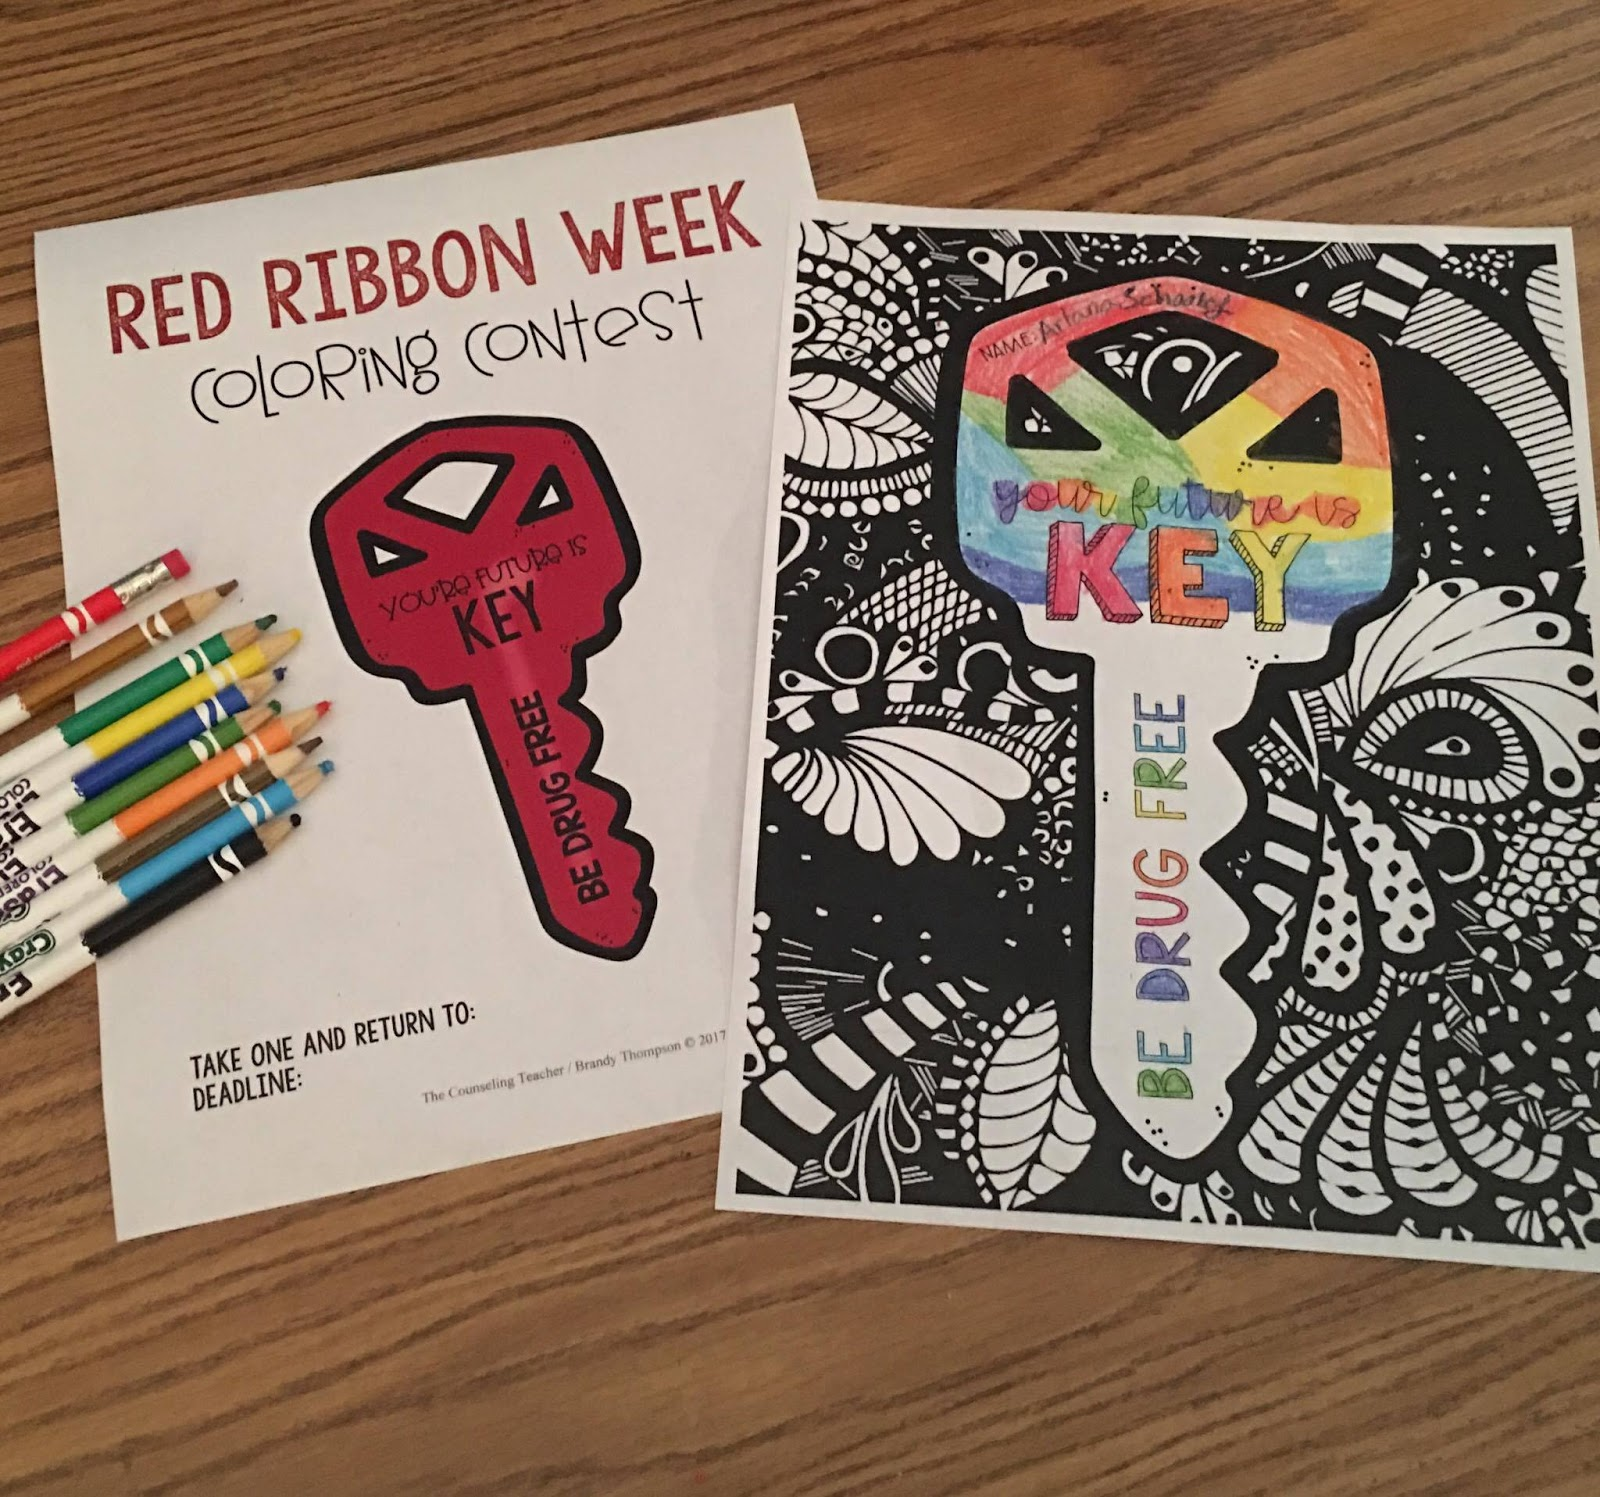 photograph regarding Red Ribbon Week Printable Activities identified as Crimson Ribbon 7 days Pursuits: Cost-free Printable Coloring Contest